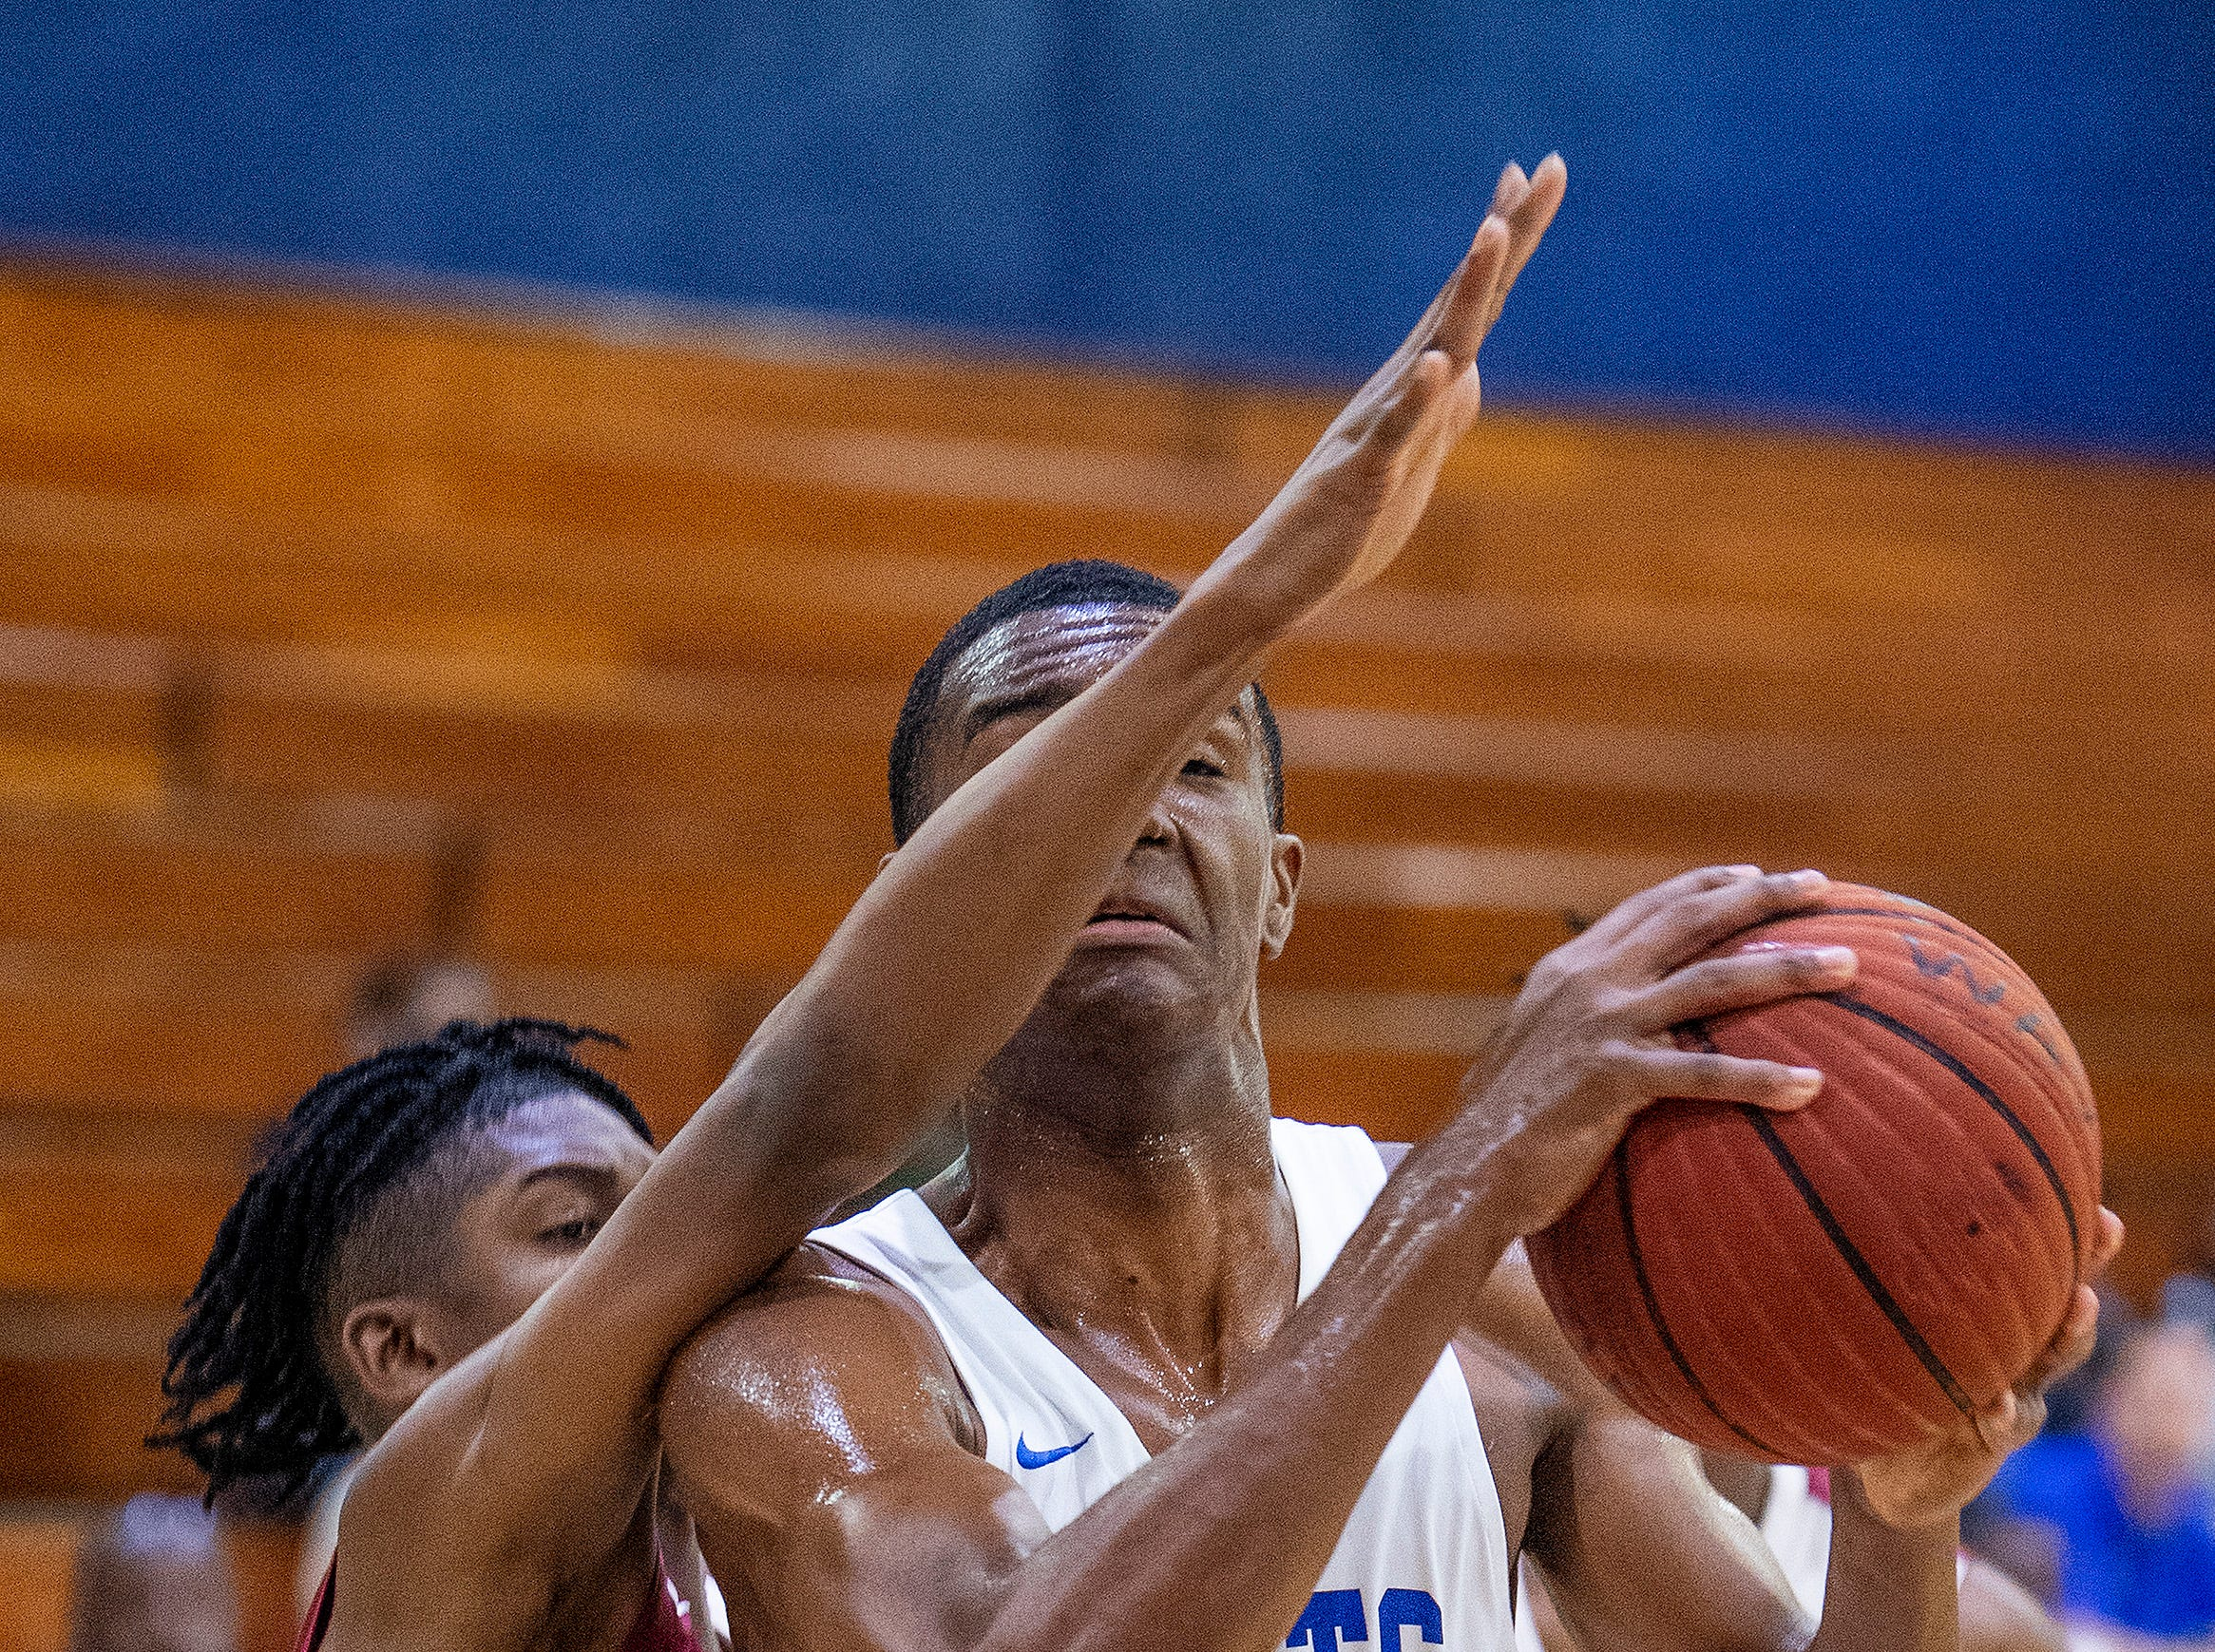 Lanier's Kendon Knight (1) against Northview's Tyshun Hicks (23) at the Lanier campus in Montgomery, Ala., on Tuesday February 12, 2019.